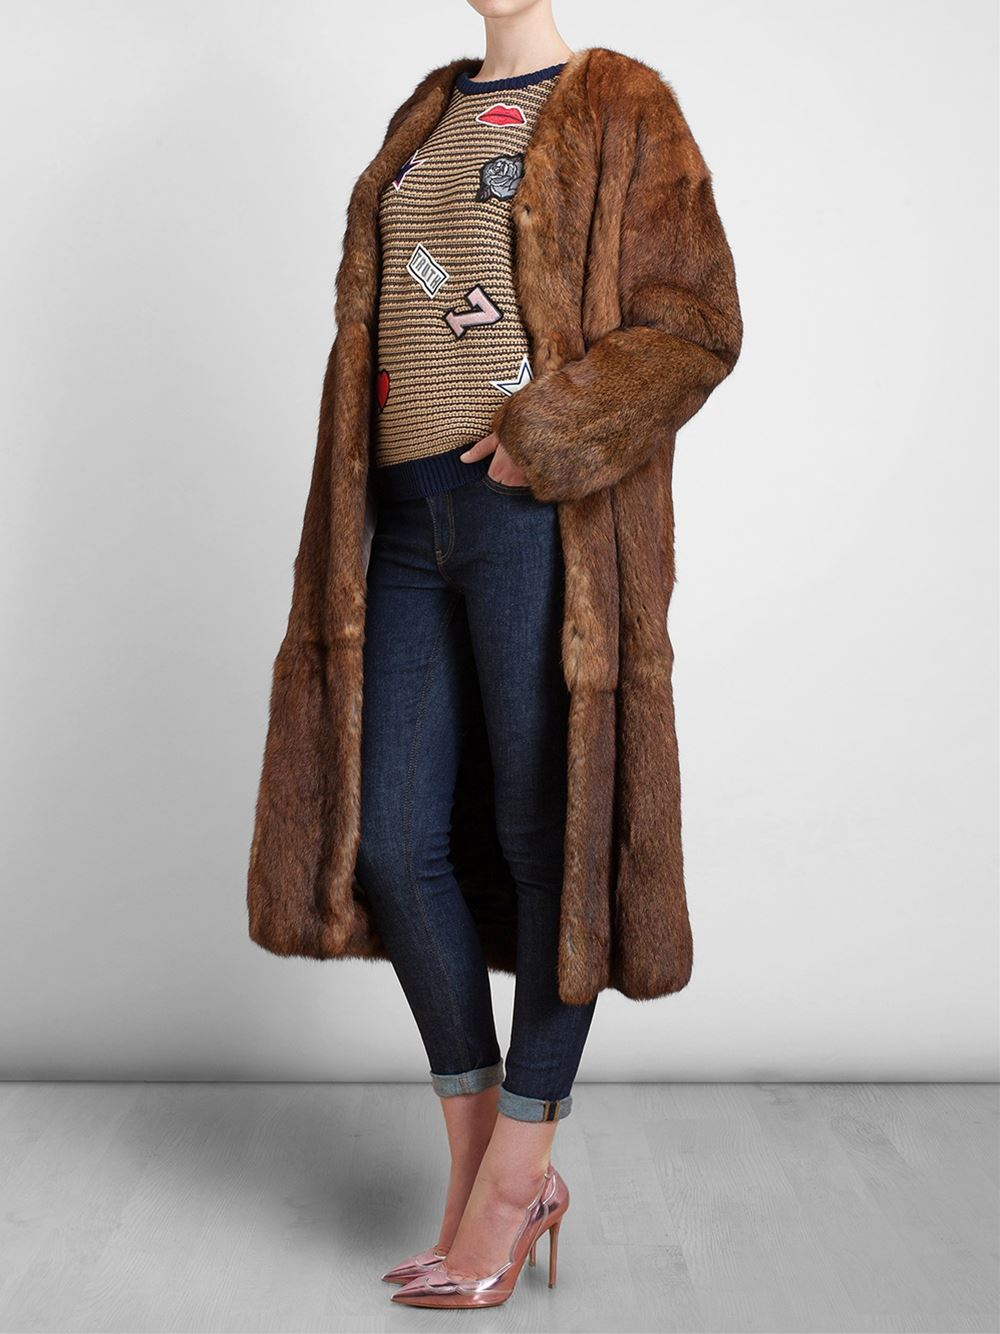 Msgm Long Rabbit Fur Coat in Brown | Lyst